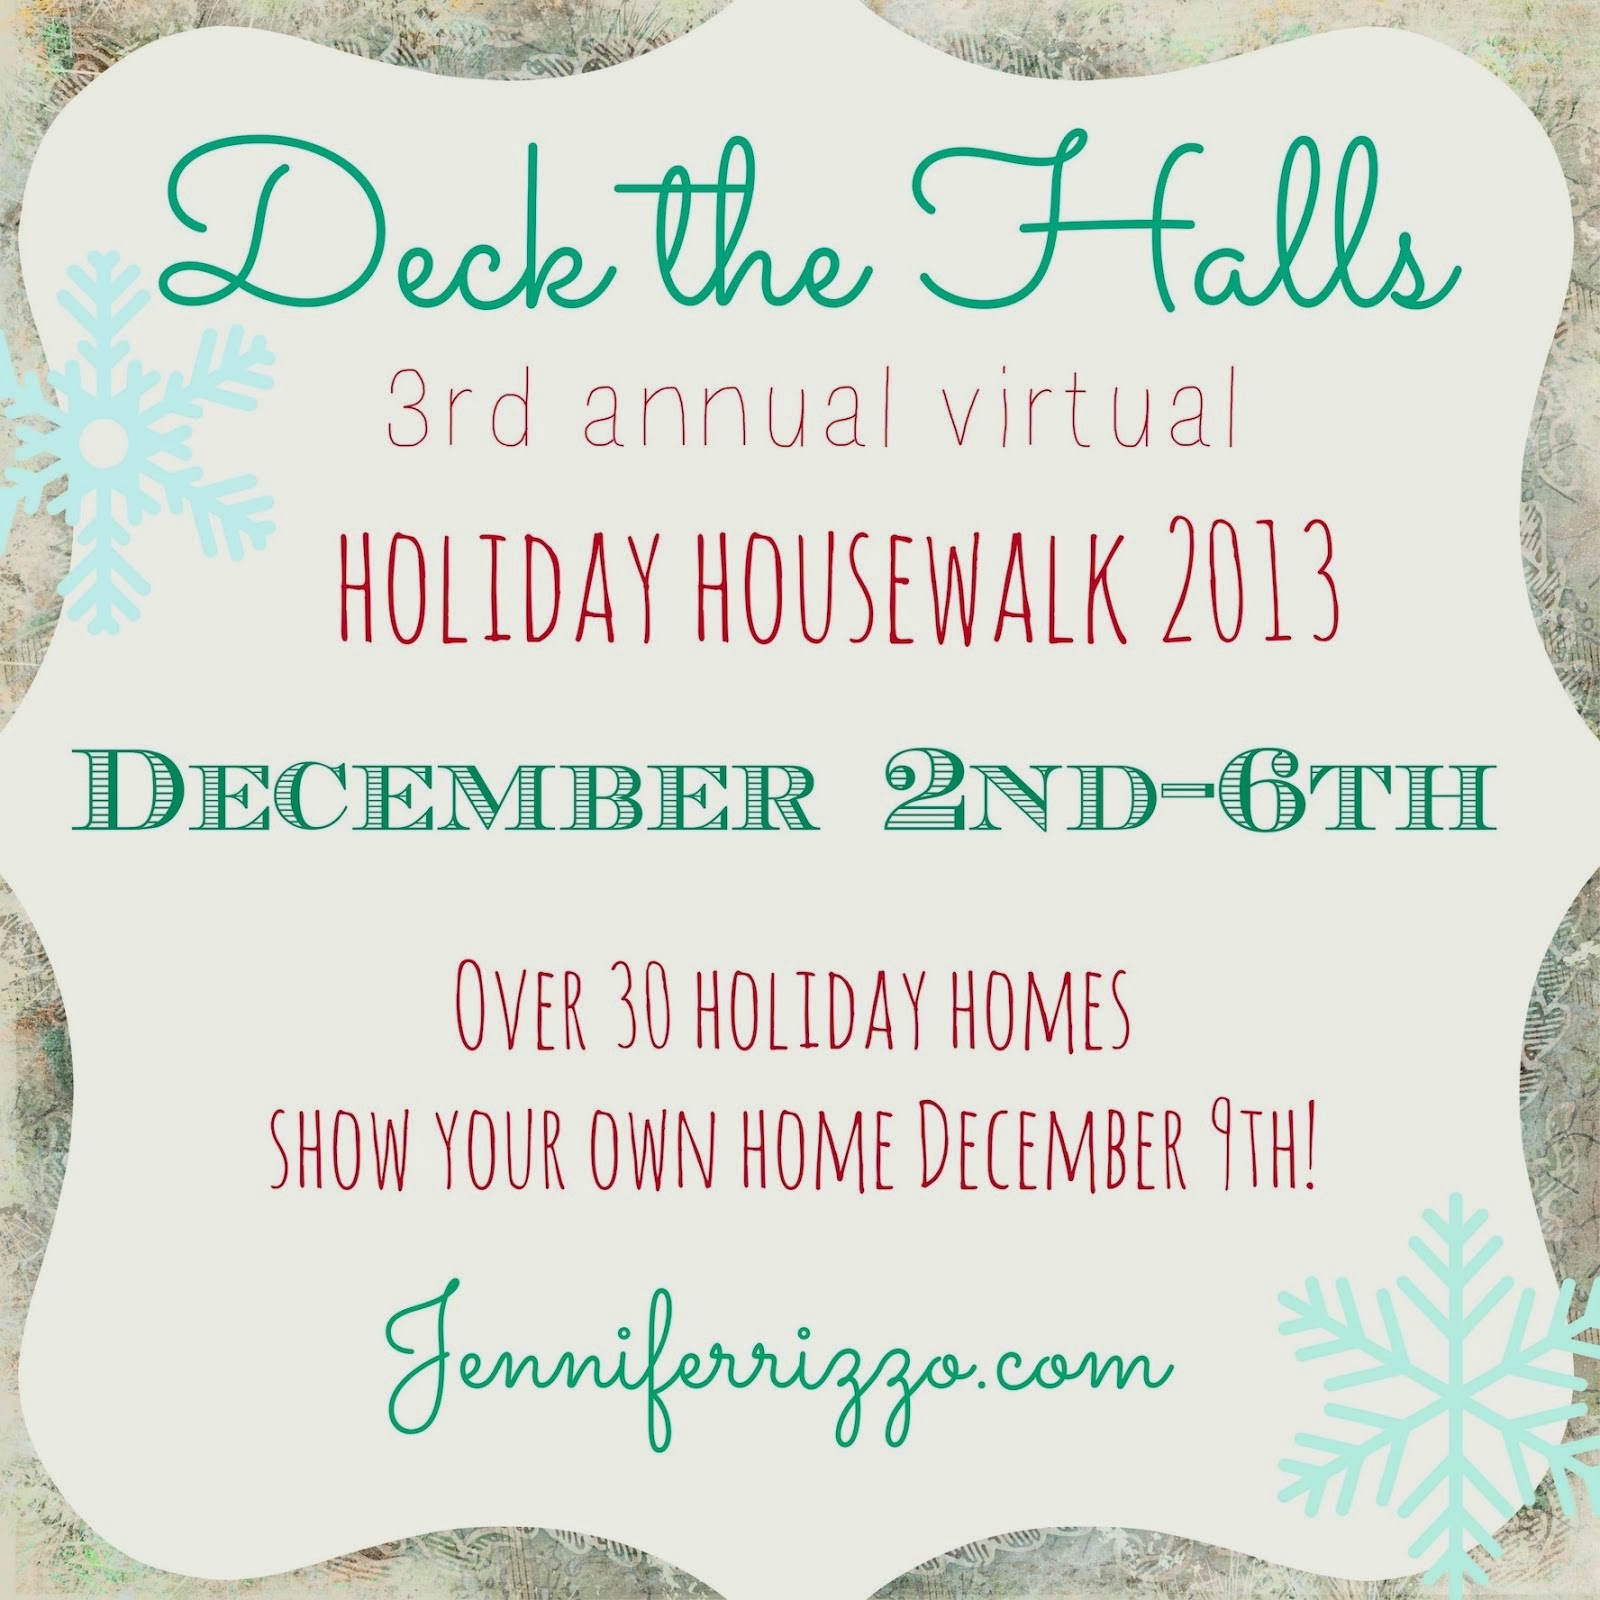 Housewalk 2013